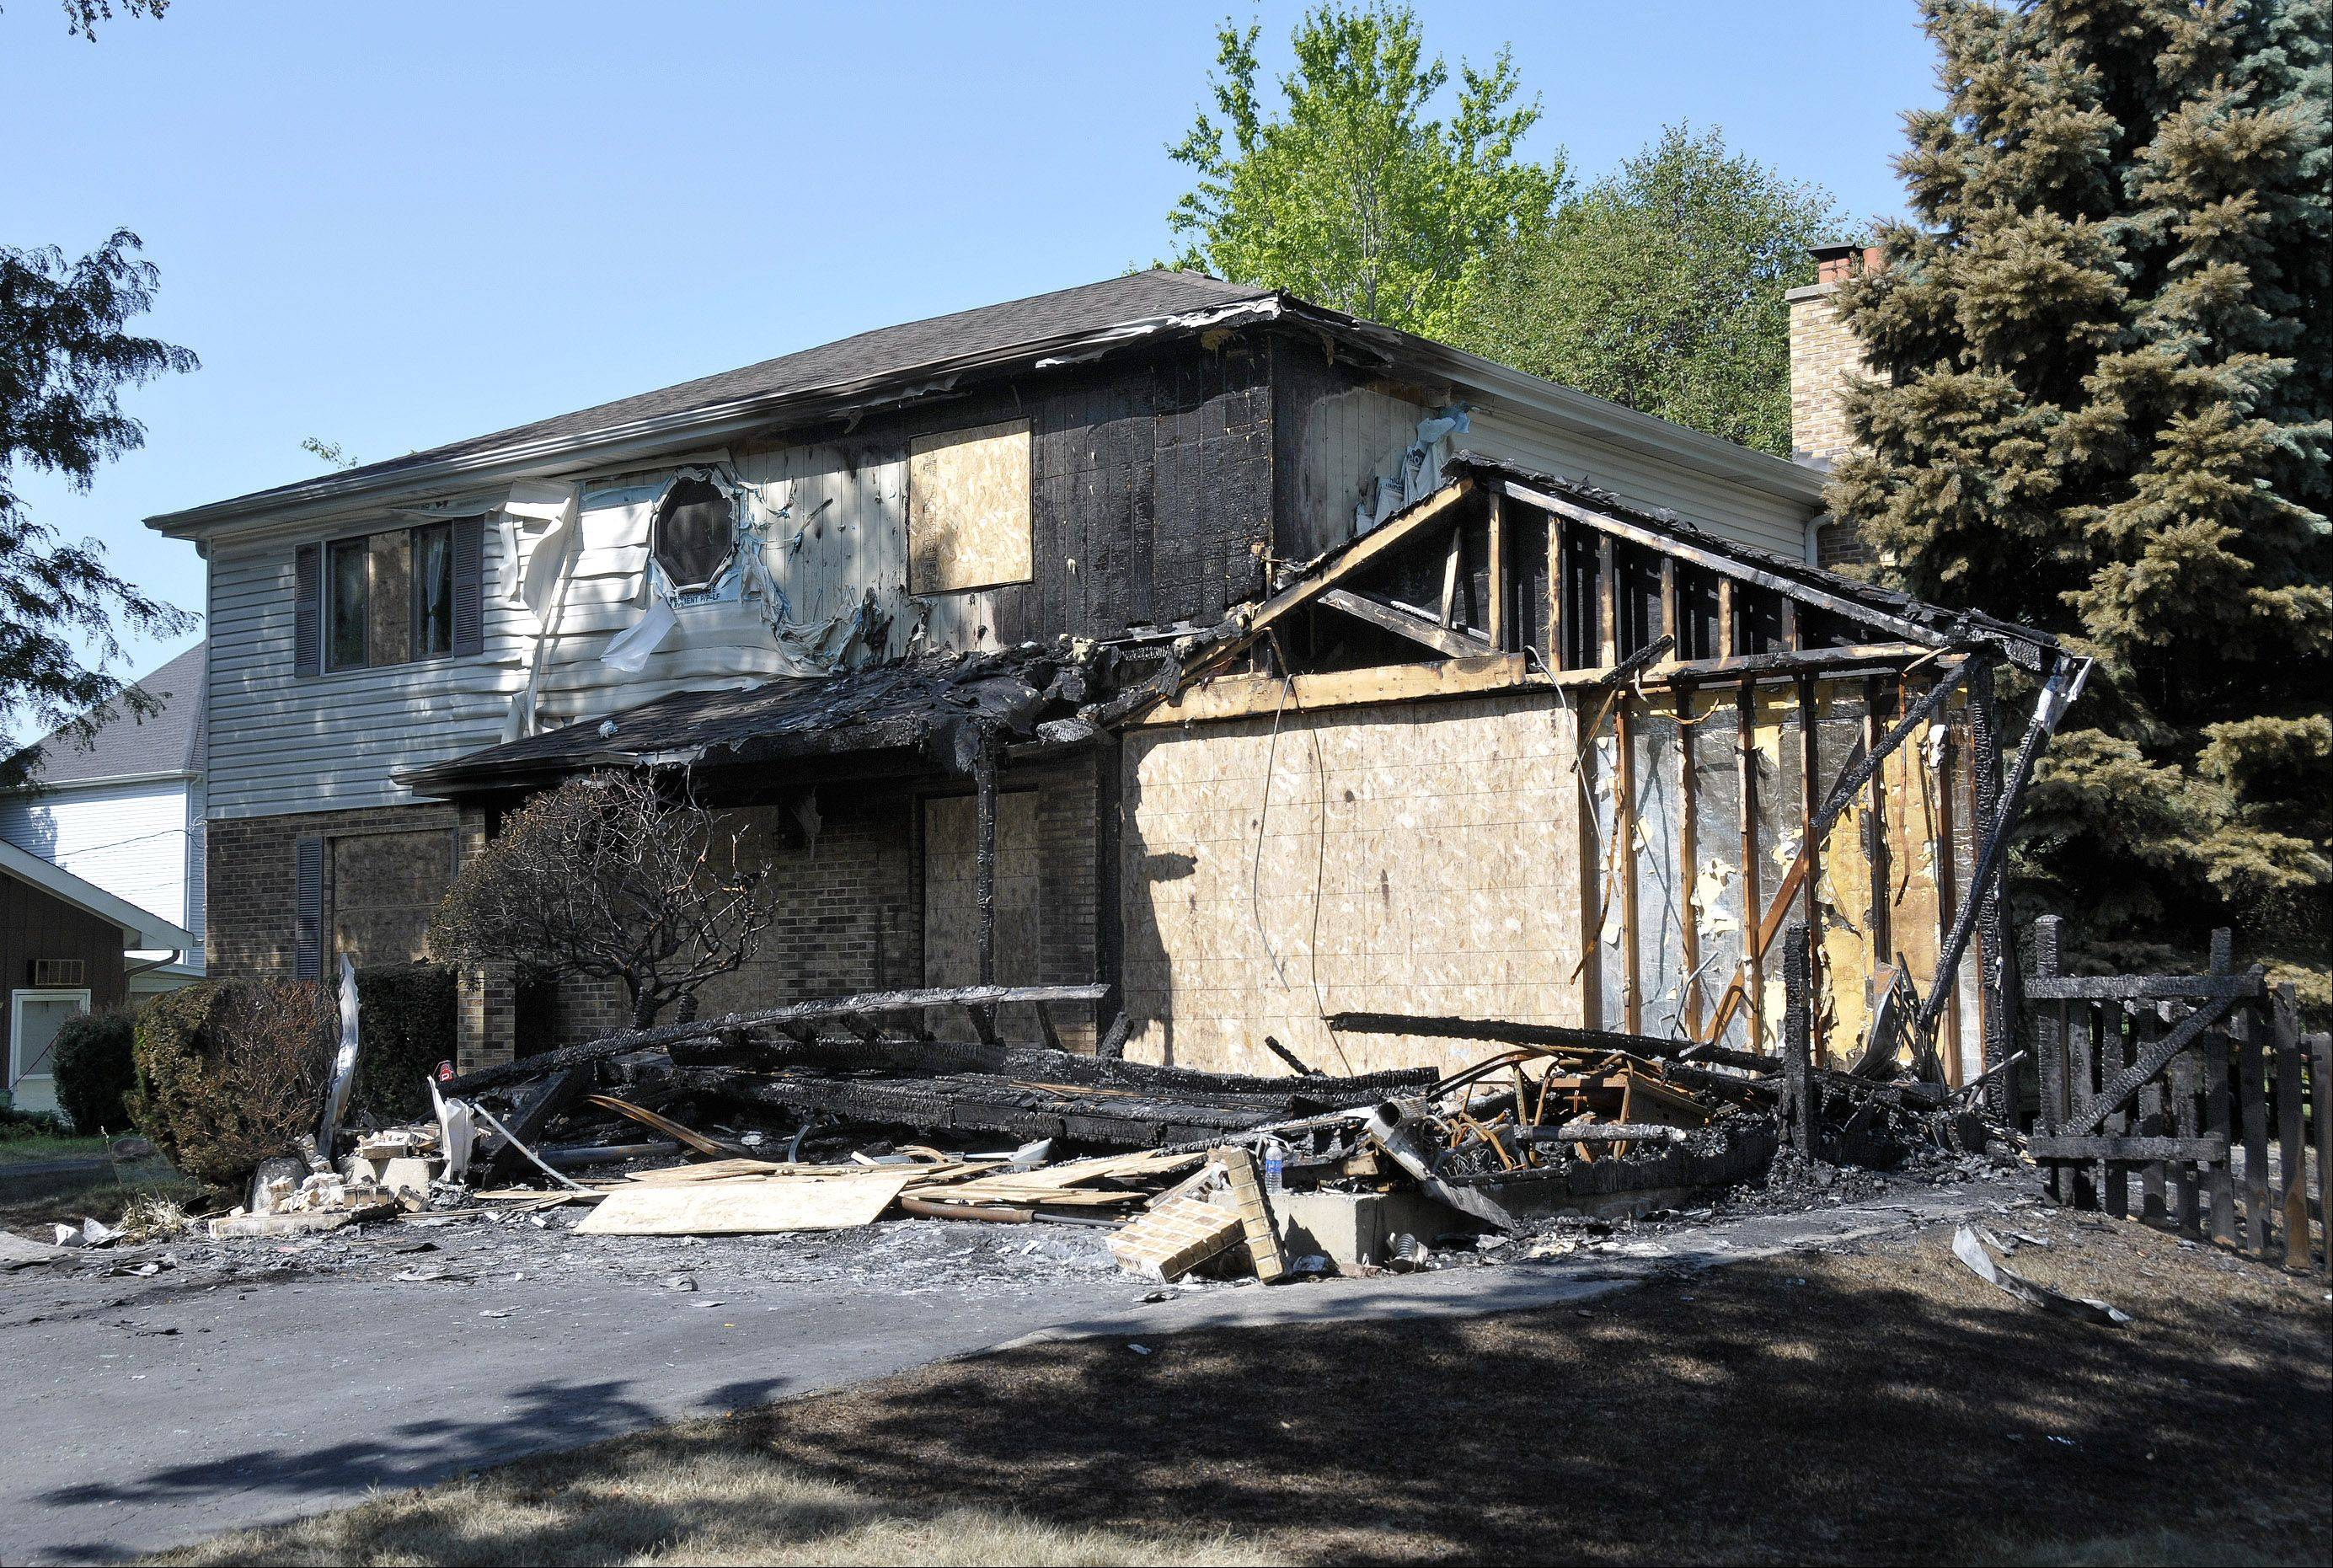 The July 22 arson fire at 1028 S. Ahrens Ave. in Lombard killed Paula Morgan and left Jason Cassidy severely burned.